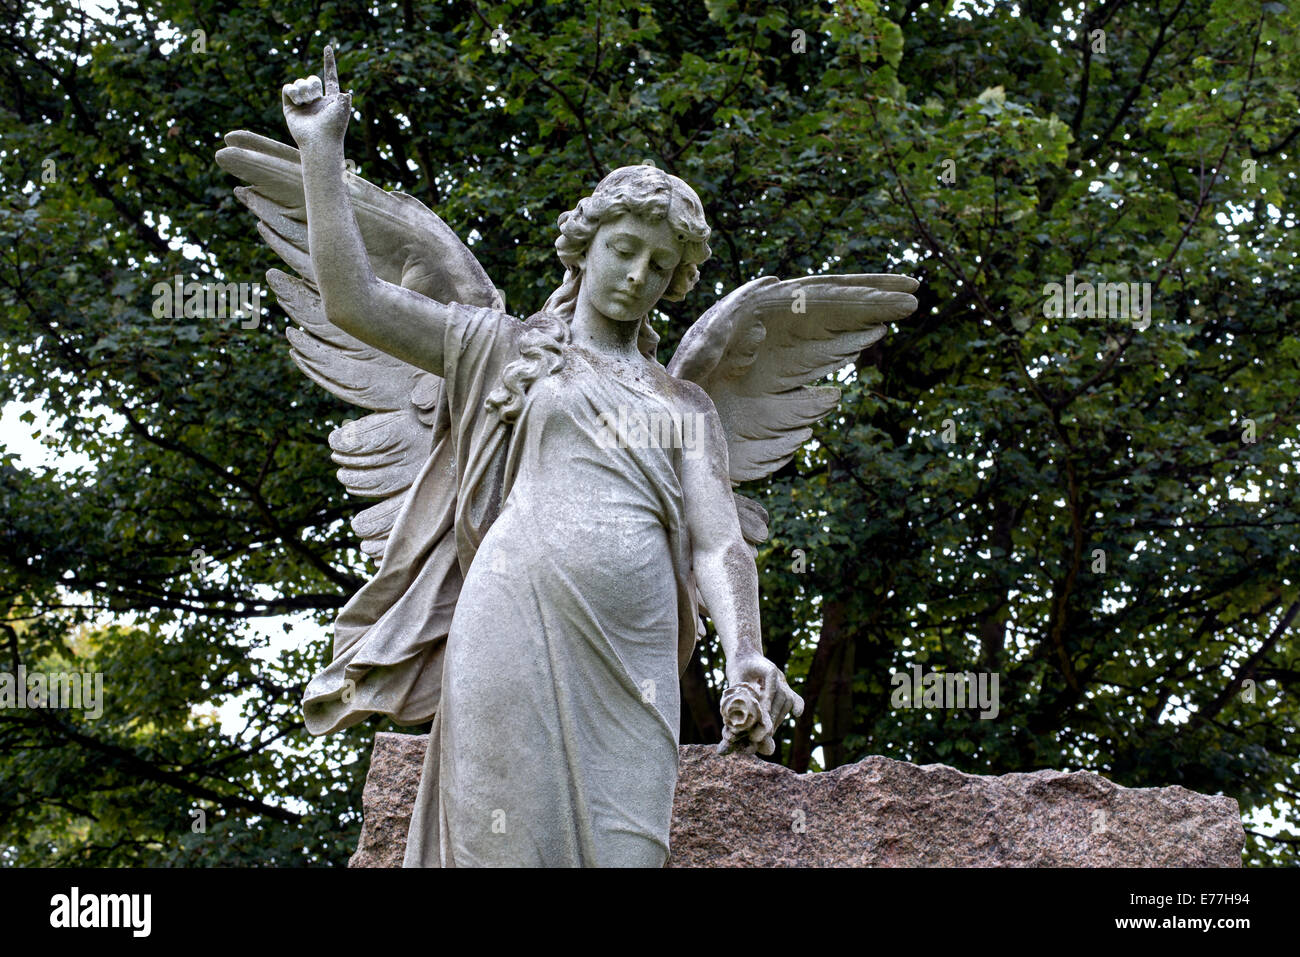 Statue of an angel holding a flower and pointing to heaven in the Grange Cemetery Edinburgh, Scotland. Stock Photo